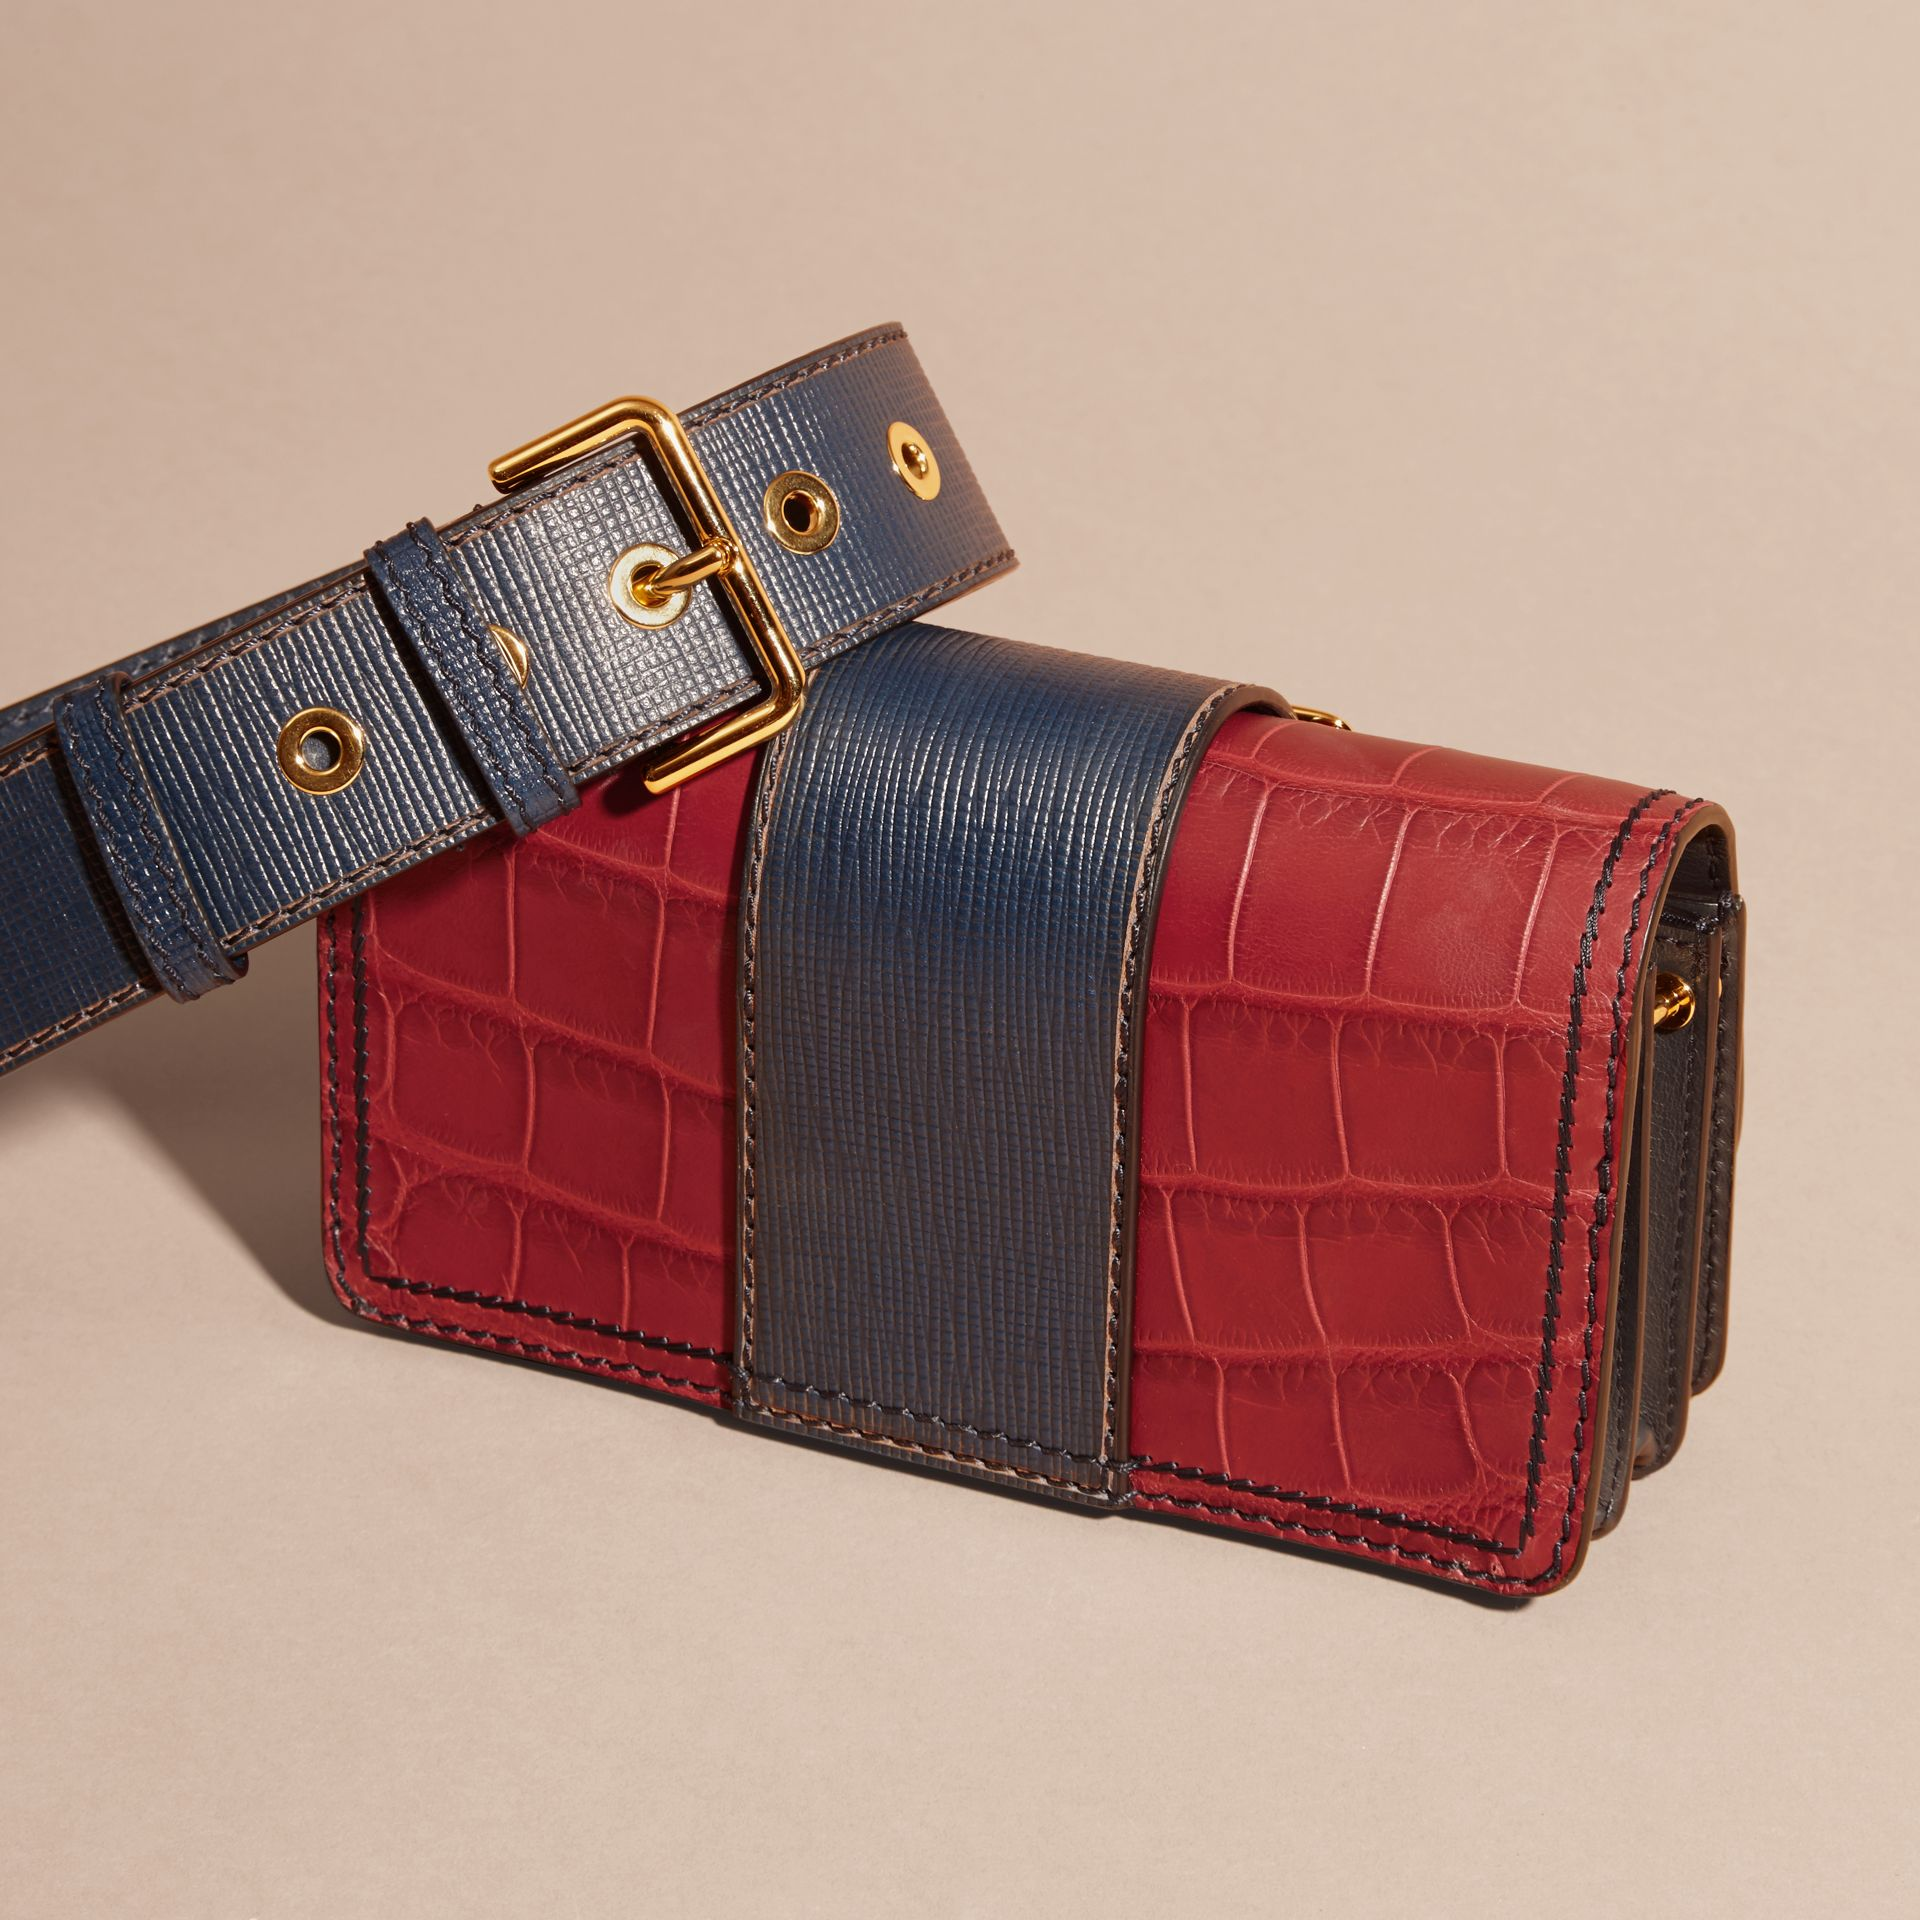 Garnet red/sapphire The Small Buckle Bag in Alligator and Leather Garnet Red/sapphire - gallery image 5